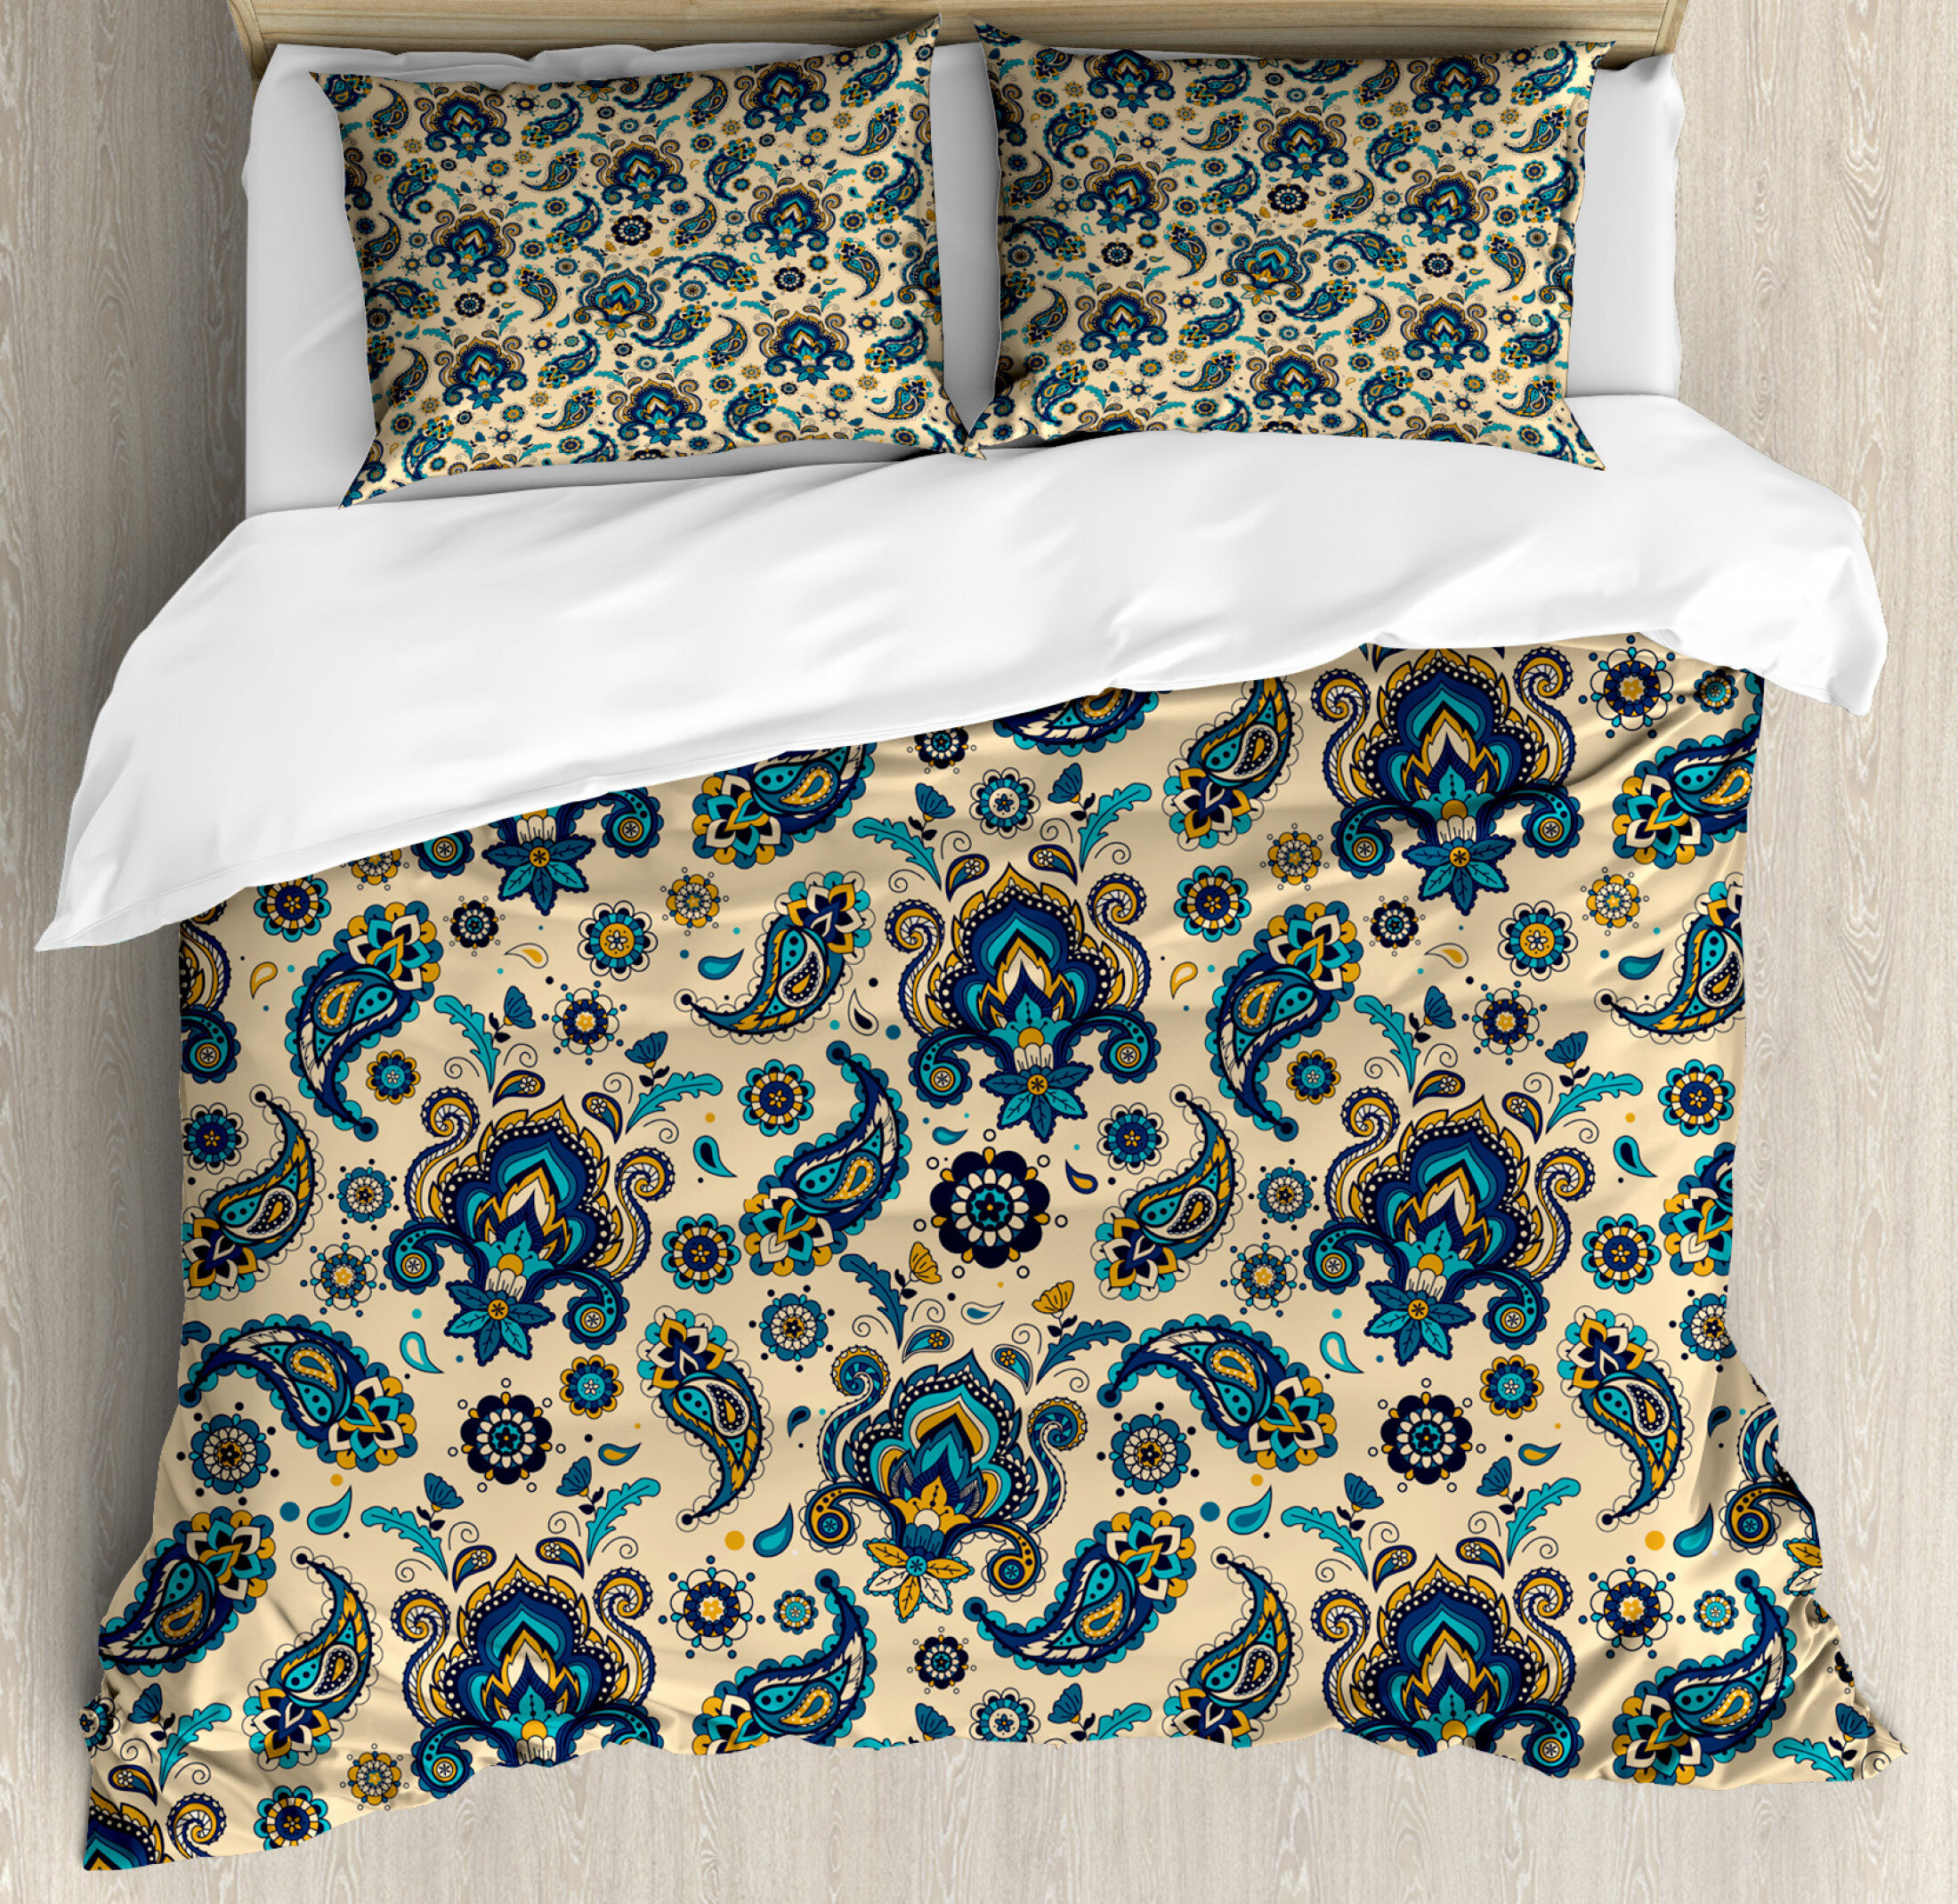 Paisley Quilt Duvet Cover Pillowcase Bedding Bed Set Colourful Floral Stylish